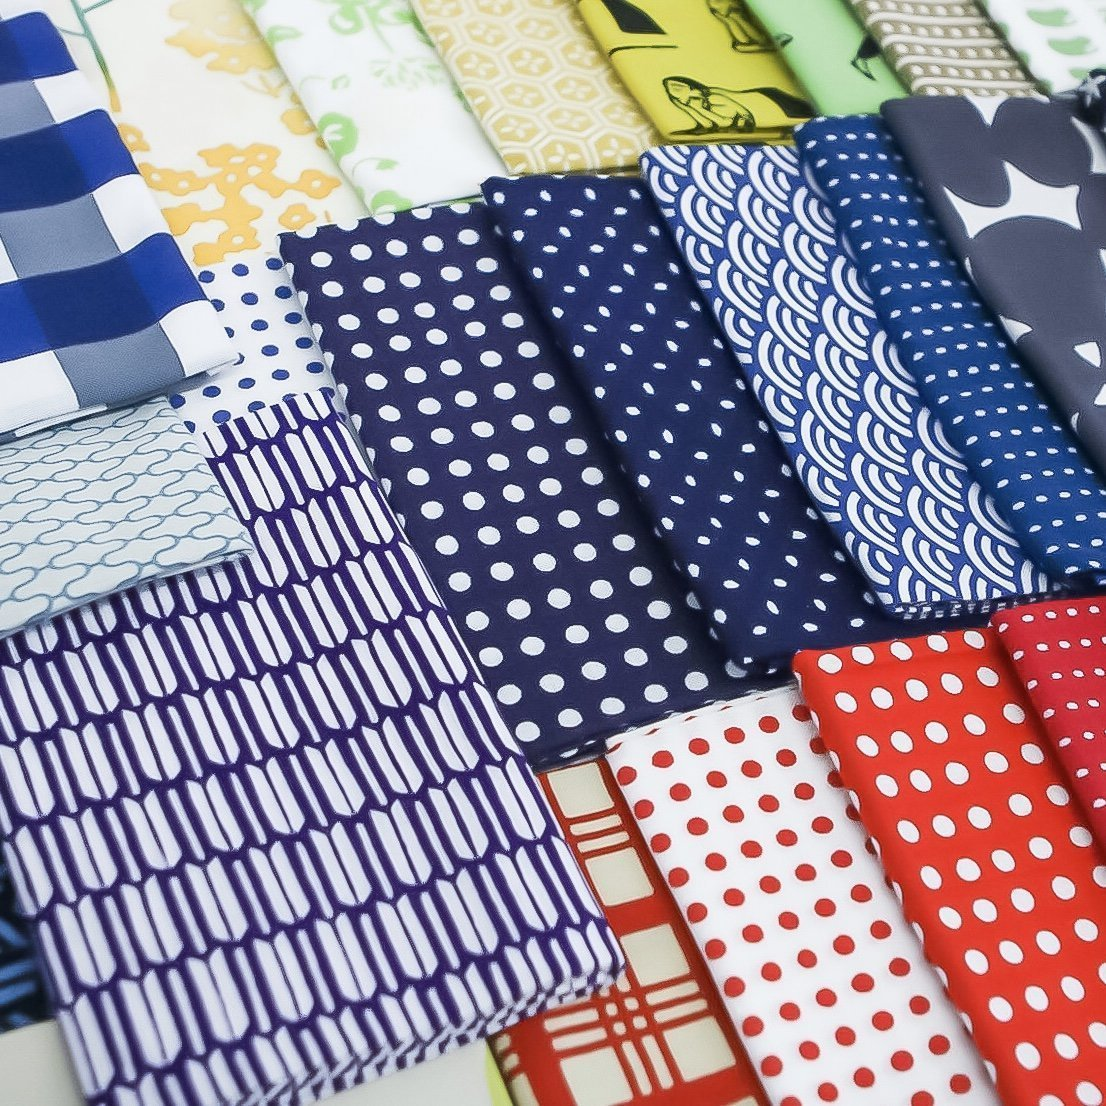 Colorful tenugui fabric cloths in many patterns